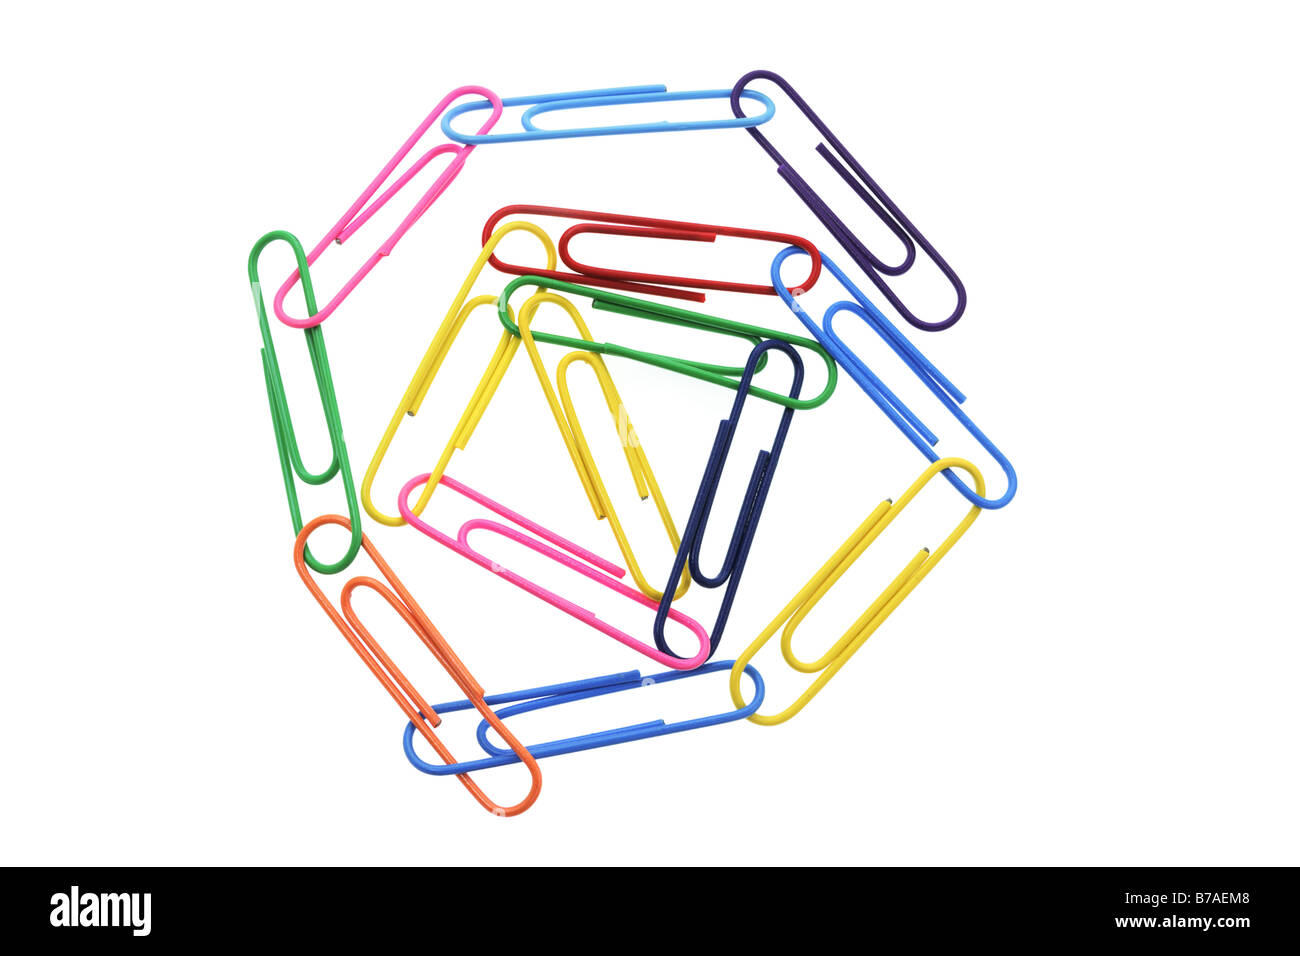 Paper Clips - Stock Image